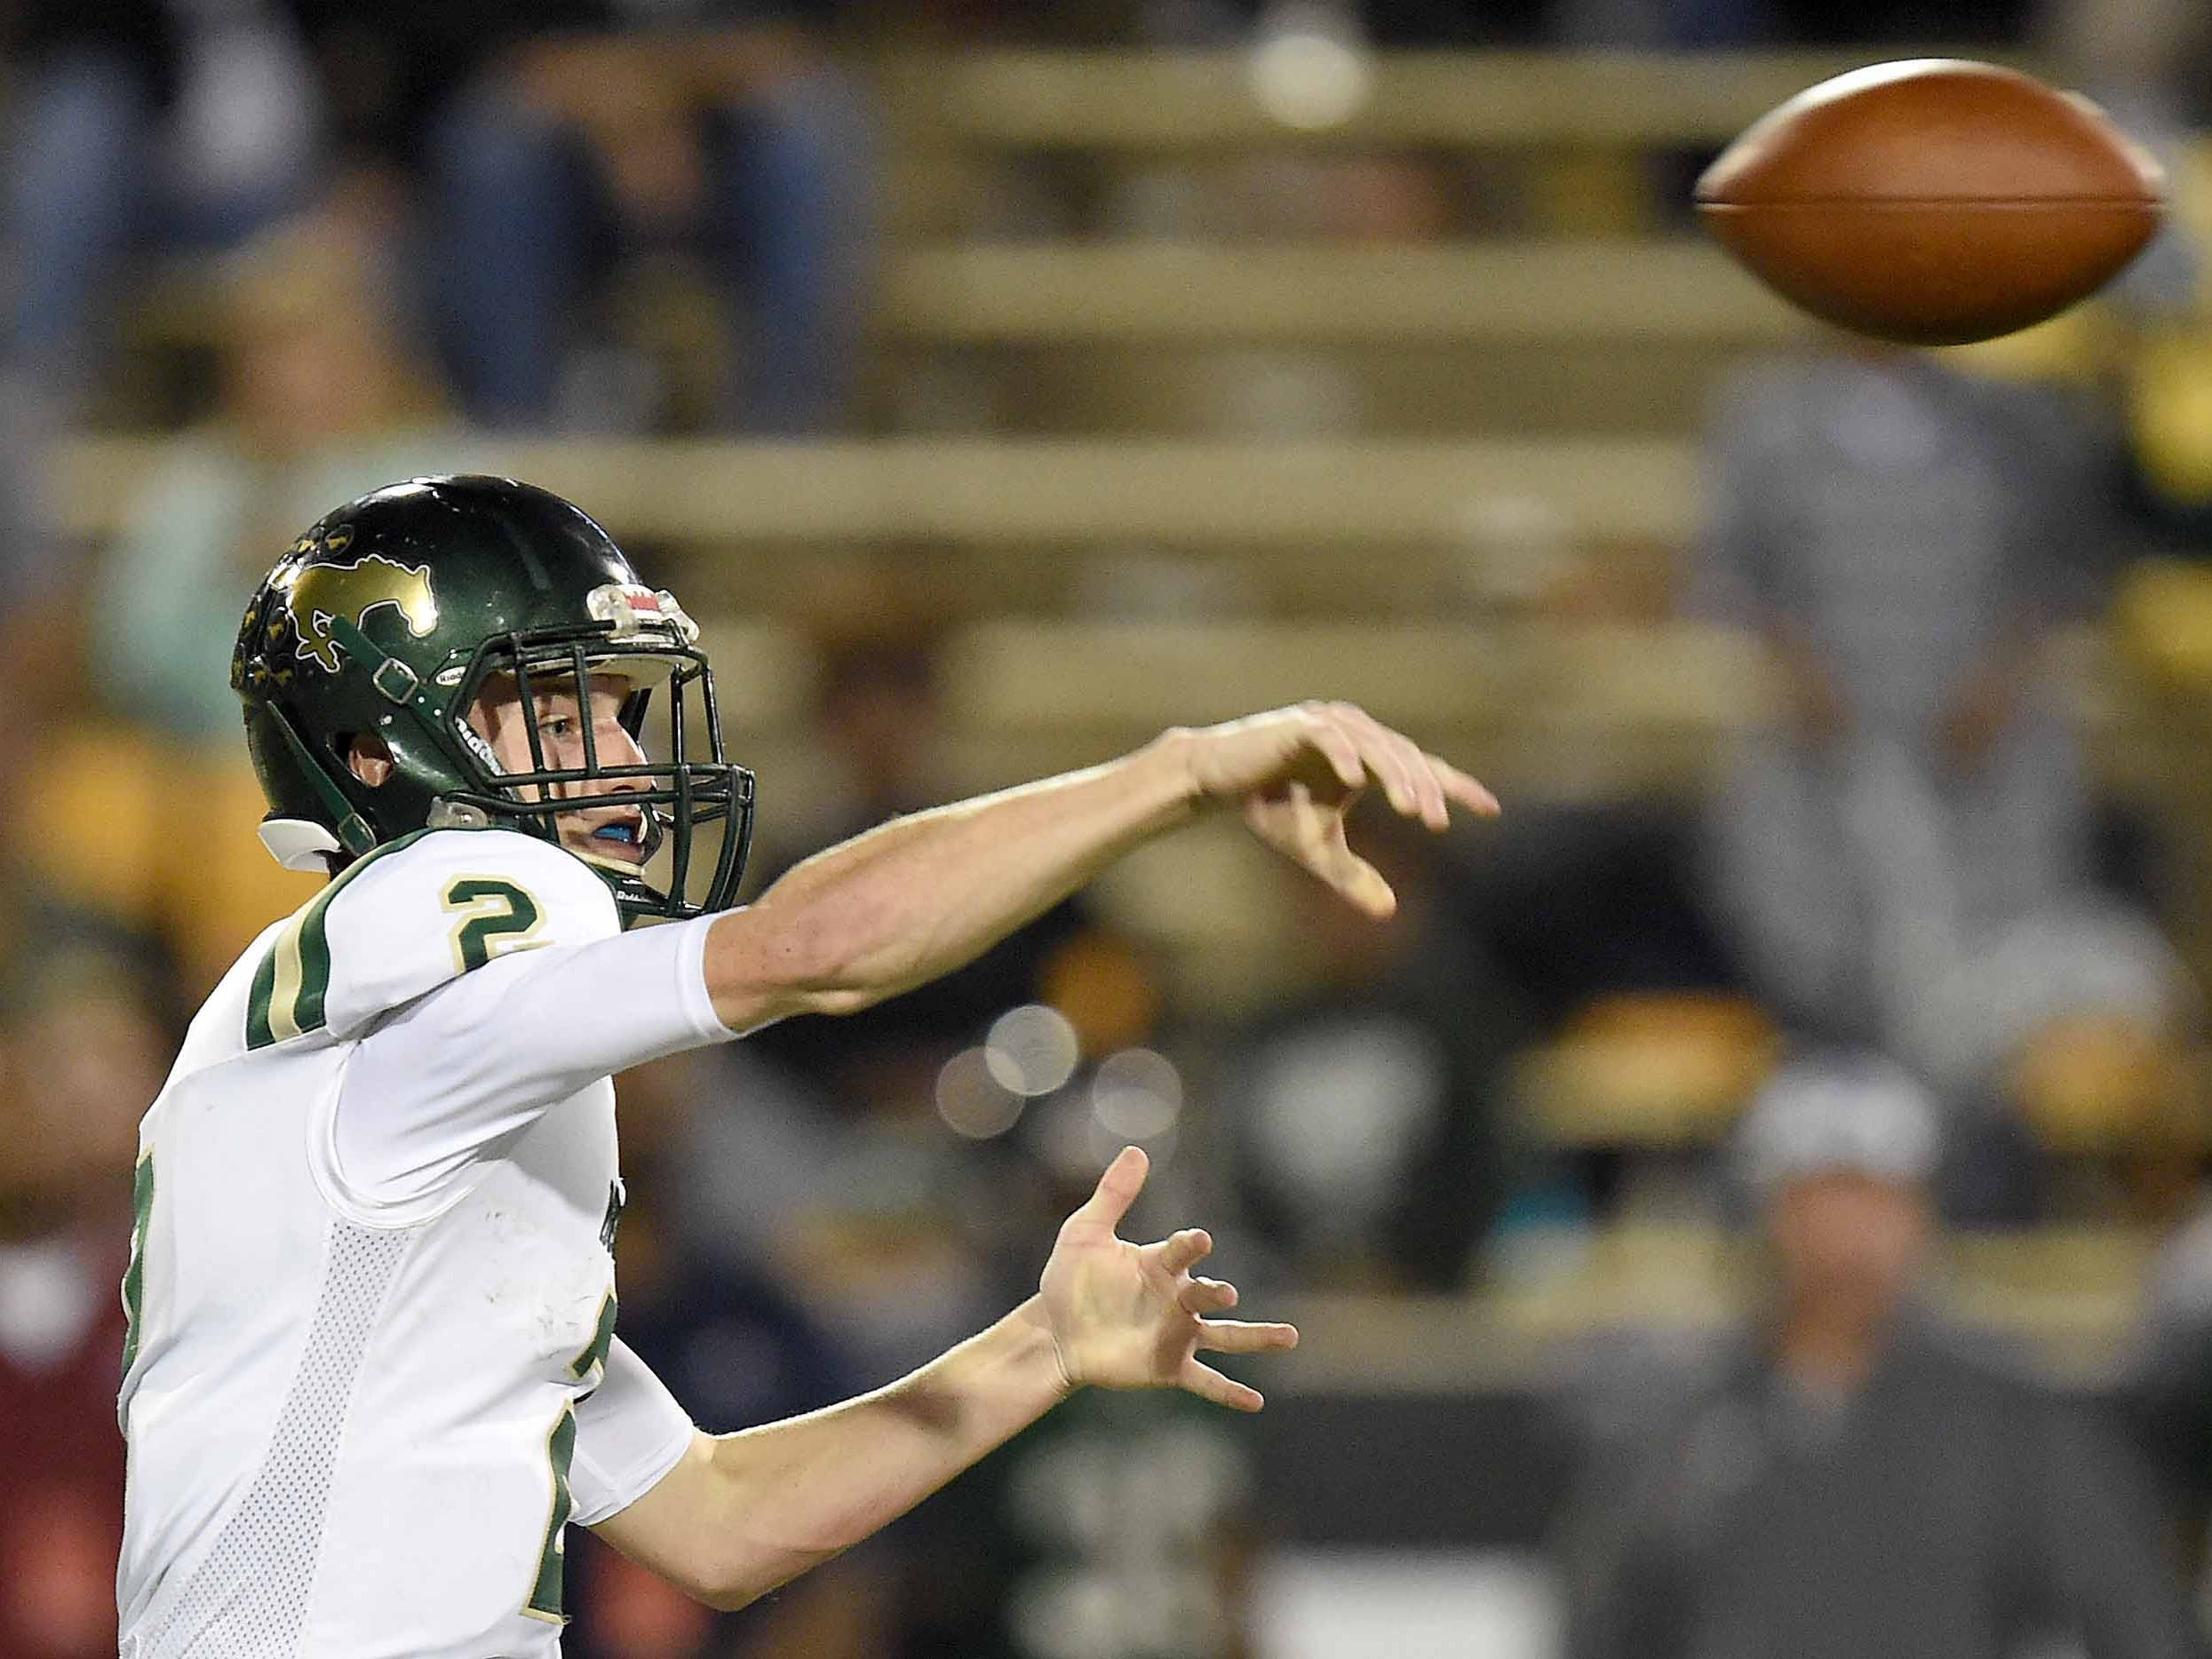 West Jones' Alan Follis (2) throws against West Point on Saturday, December 1, 2018, in the MHSAA BlueCross BlueShield Gridiron Classic High School Football Championships in M.M. Roberts Stadium on the University of Southern Mississippi campus in Hattiesburg, Miss.